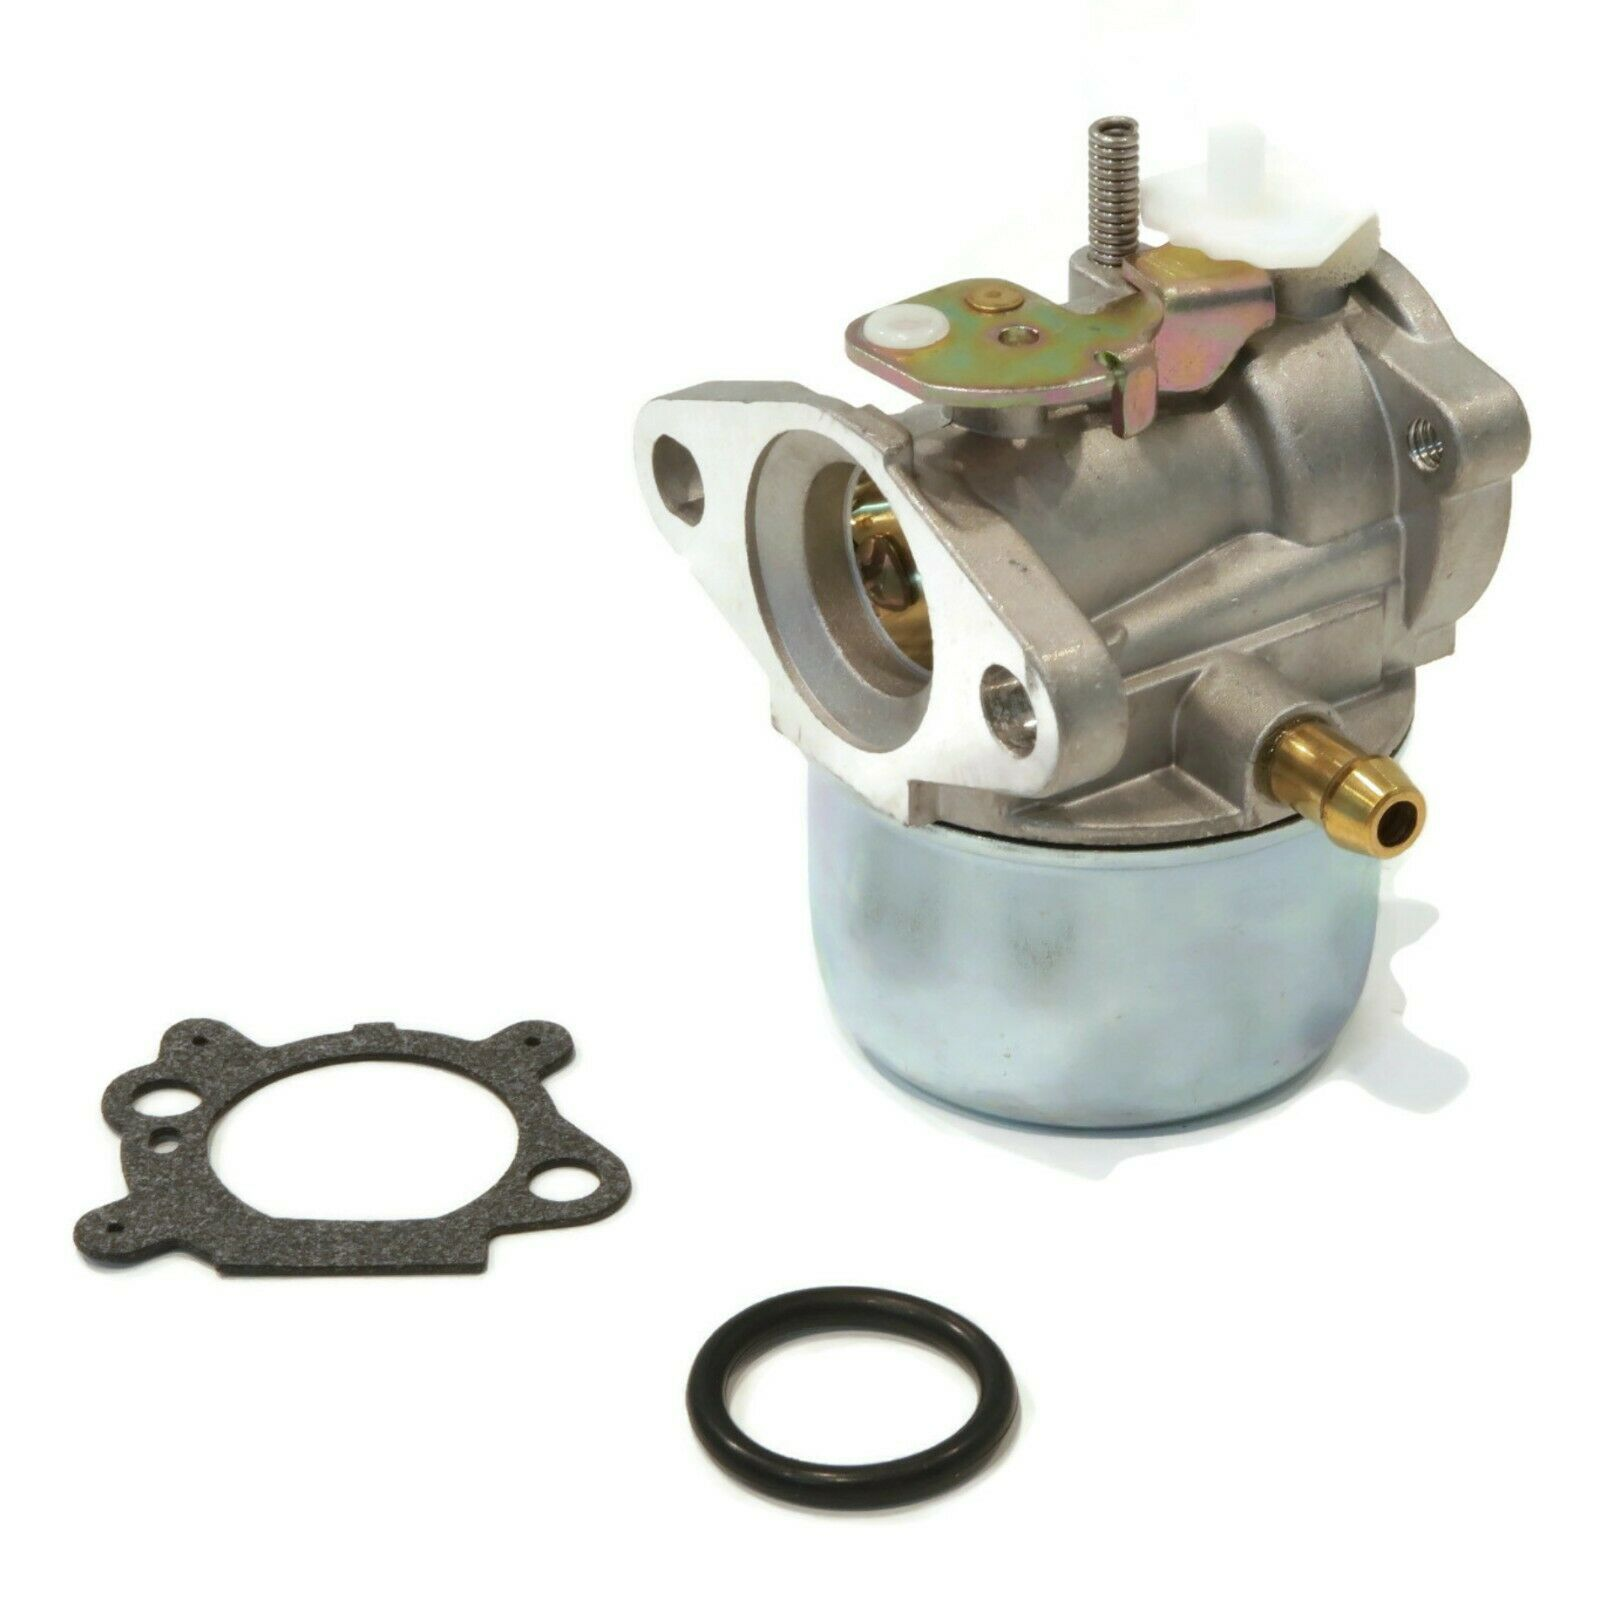 New Carburetor Carb For Briggs Stratton 499059 497586 W Gasket And Diagram Along With Choke Bs